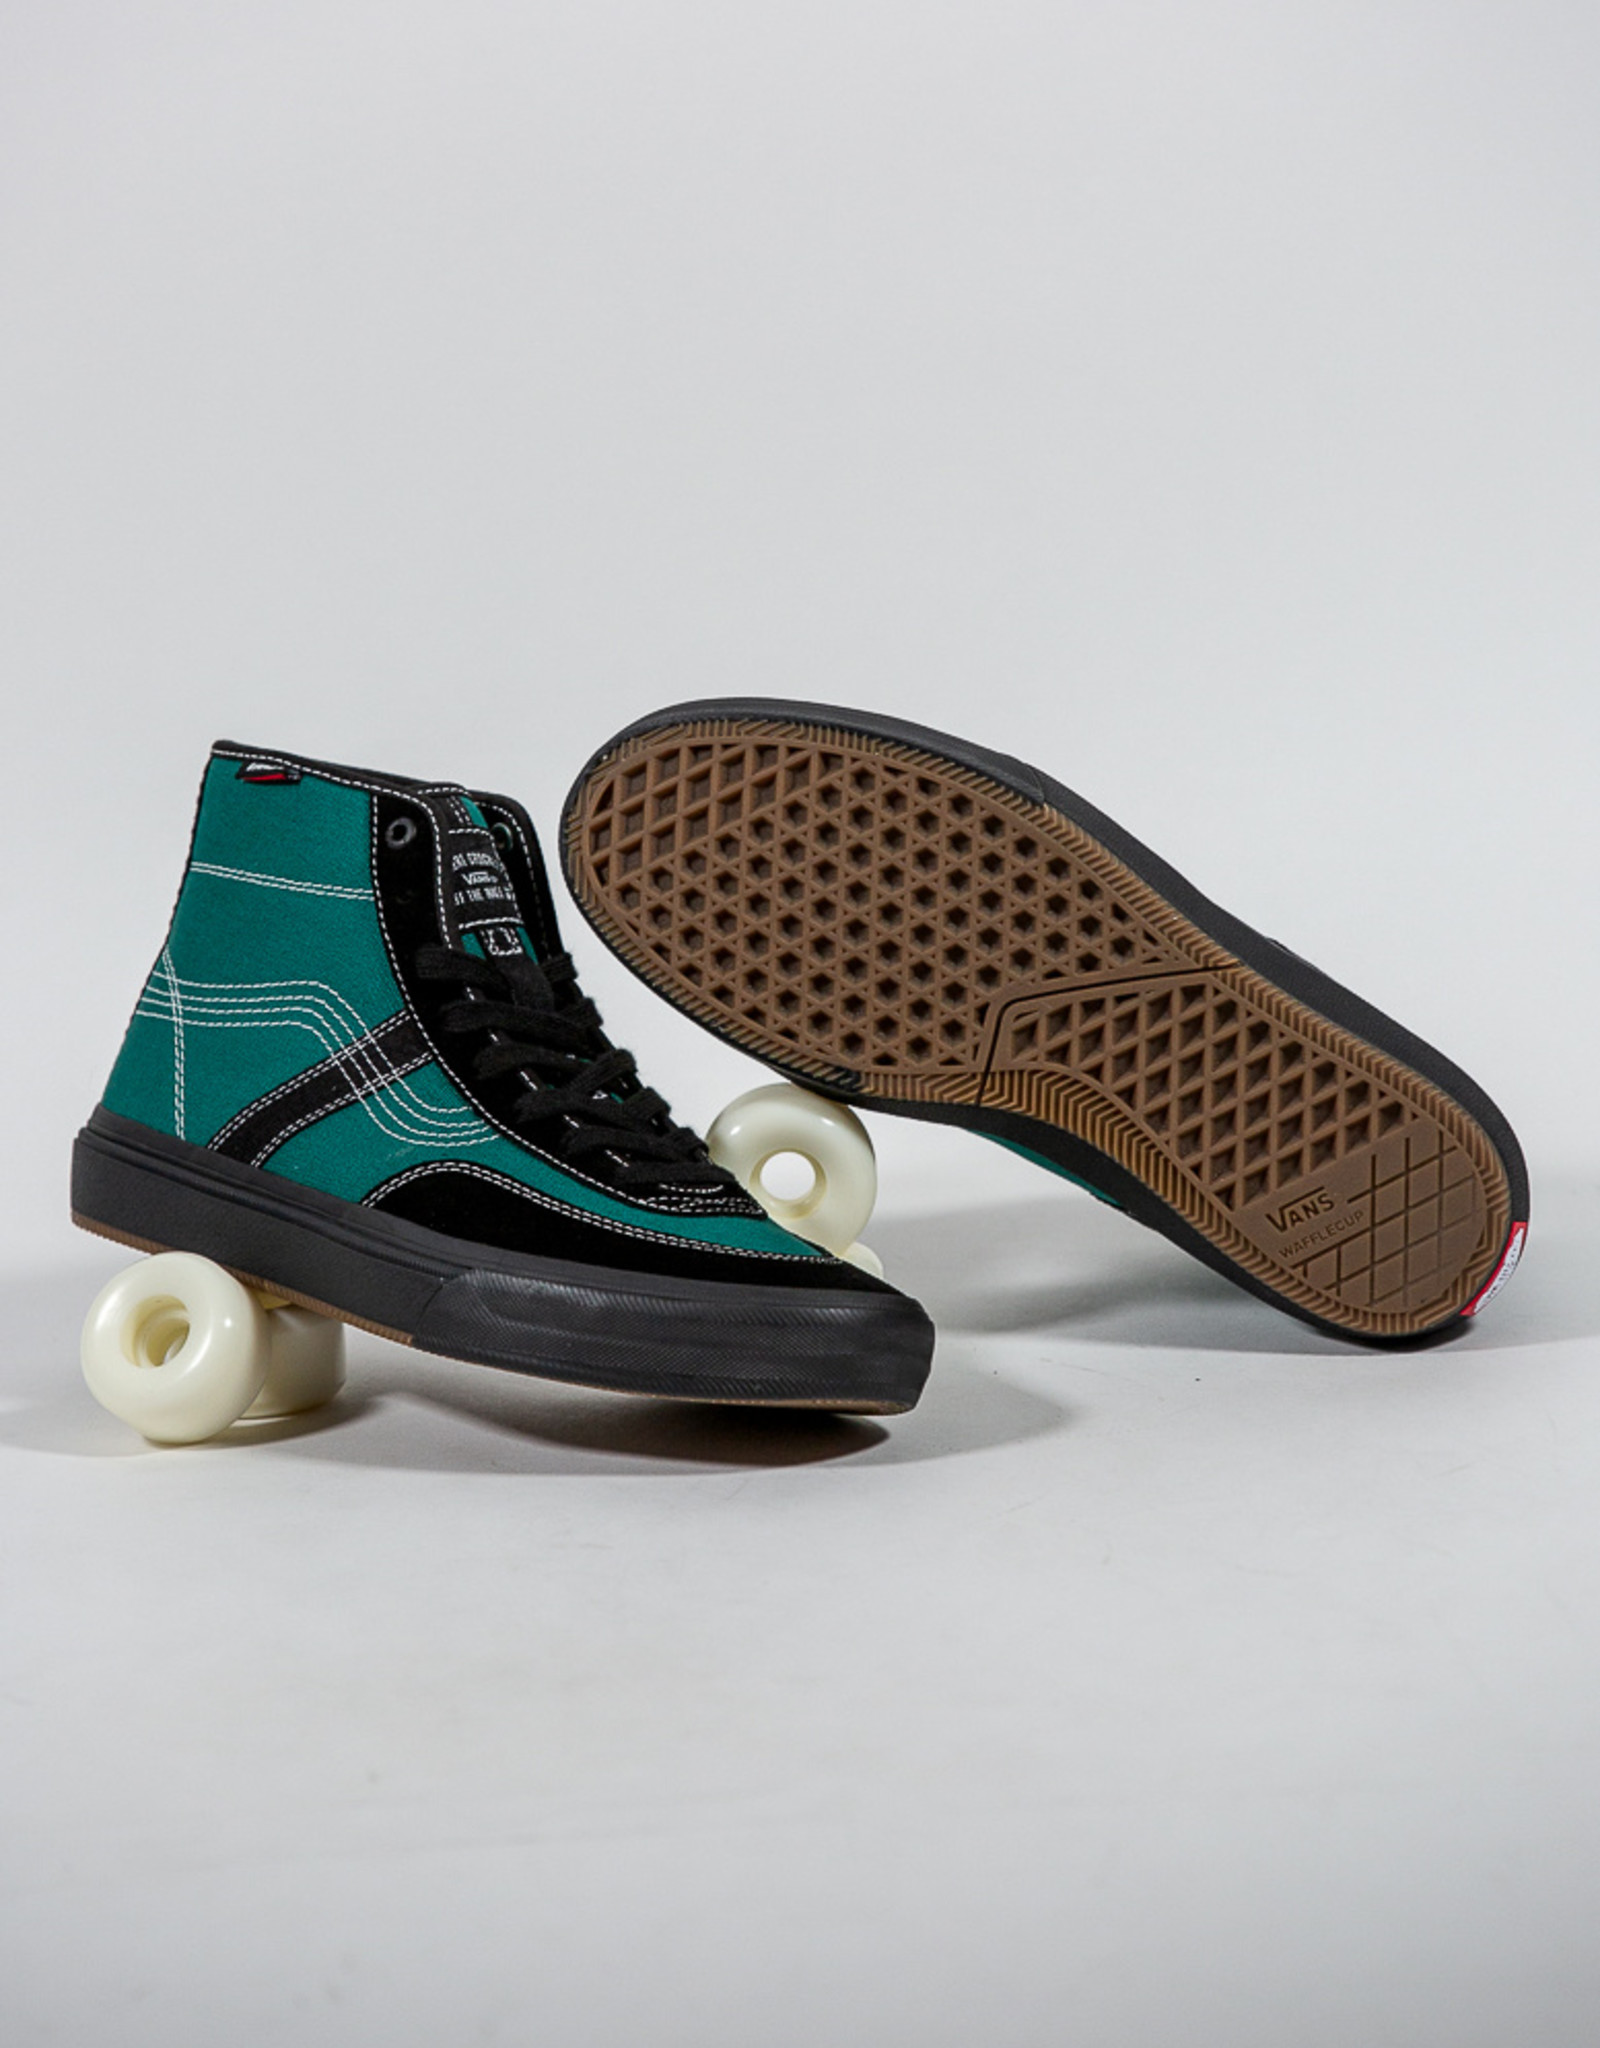 VANS VANS X QUASI CROCKETT HIGH PRO - (ALL COLORS)